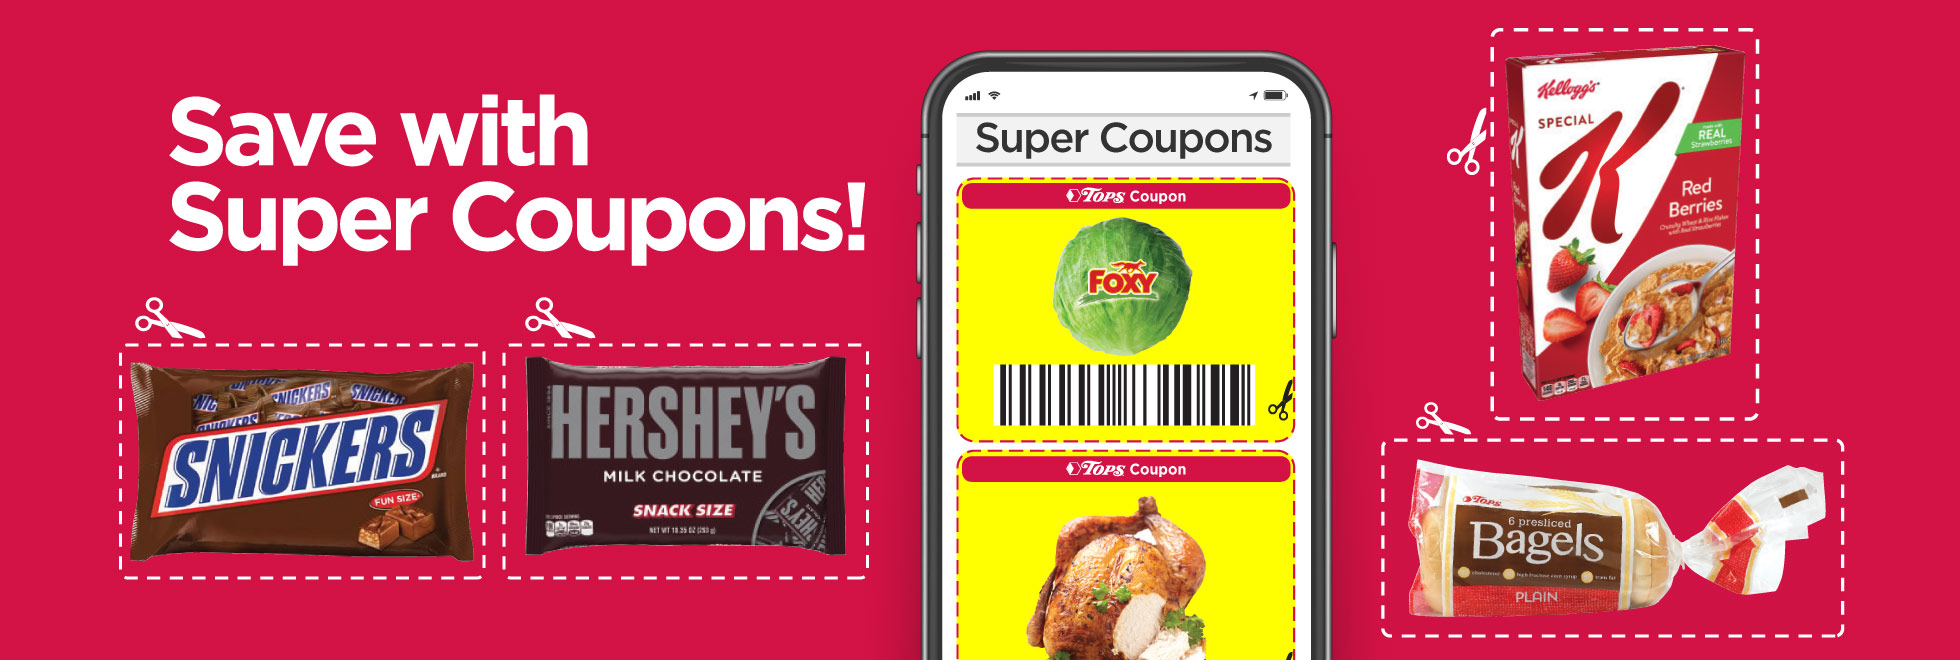 Tops Super Copuon Savings